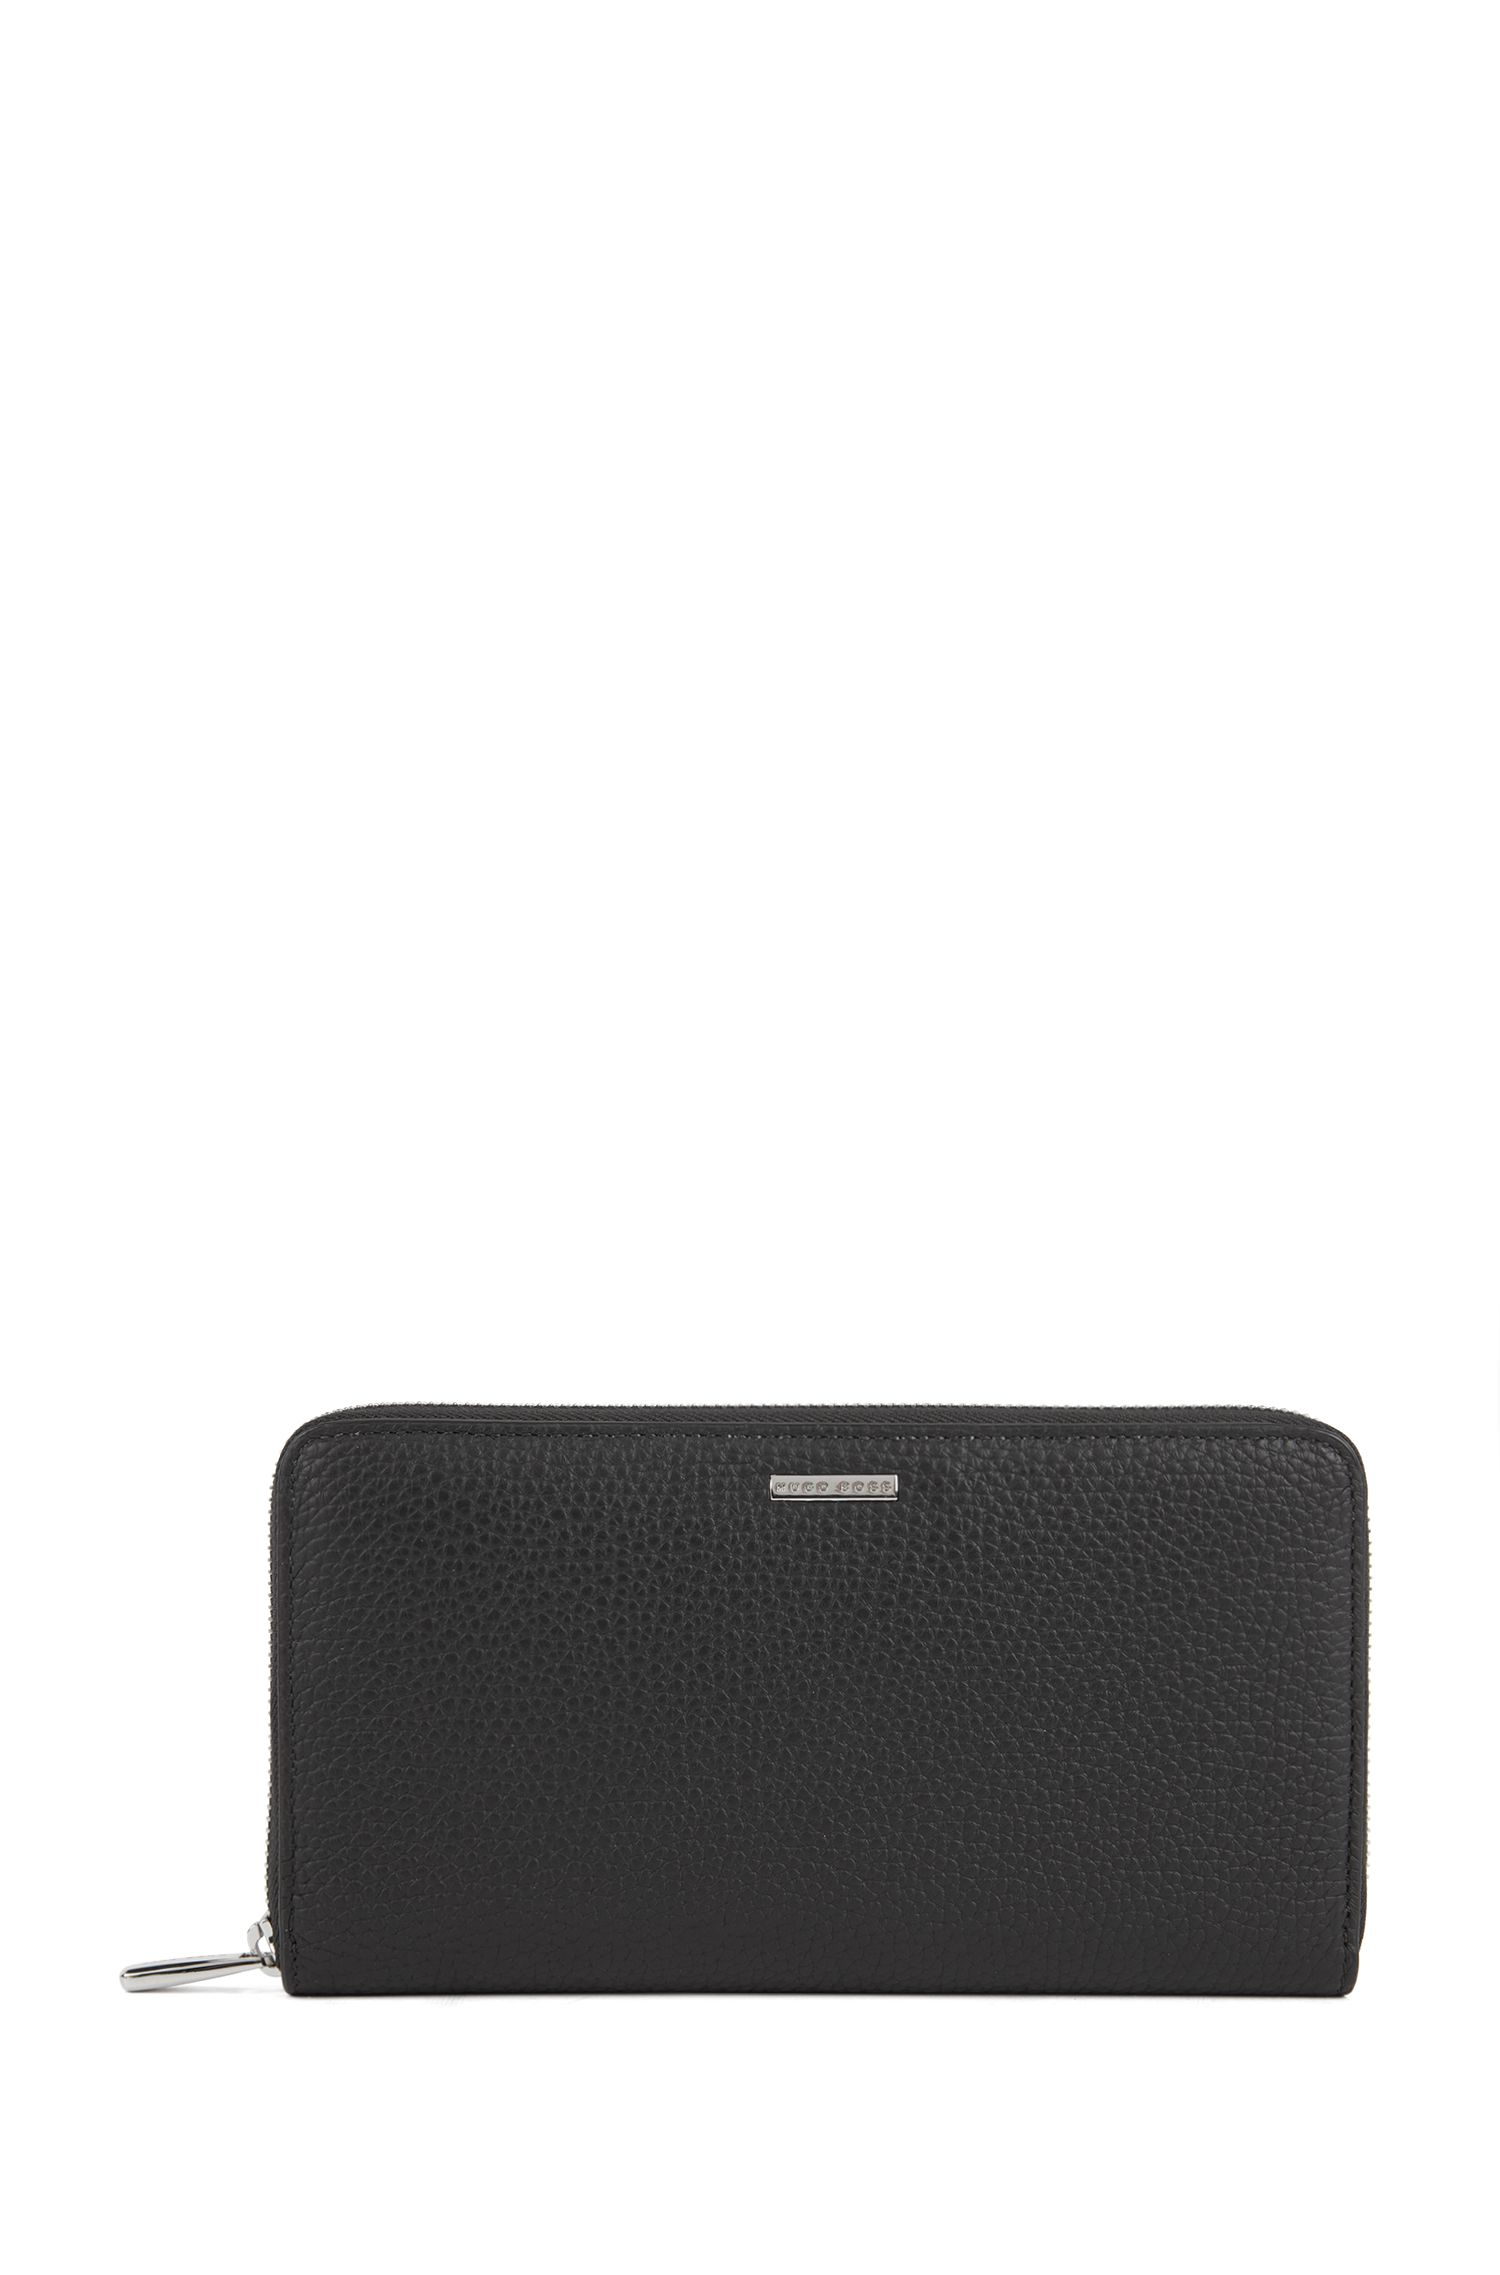 Zip-around travel wallet in grainy Italian leather, Black